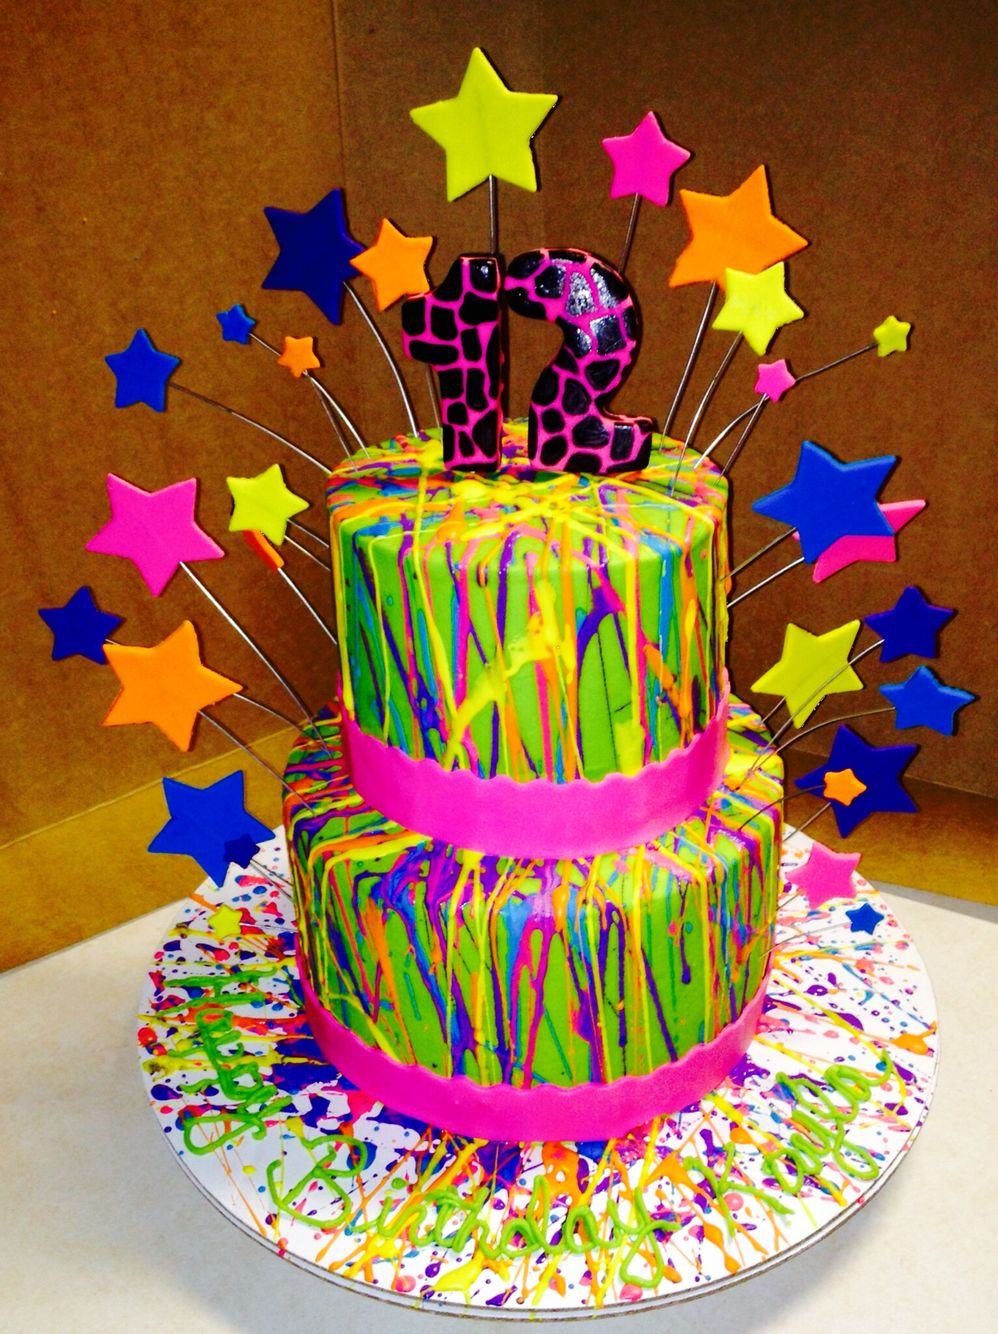 Pleasant Neon Buttercream Splatter Cake With Images Neon Birthday Cakes Funny Birthday Cards Online Alyptdamsfinfo